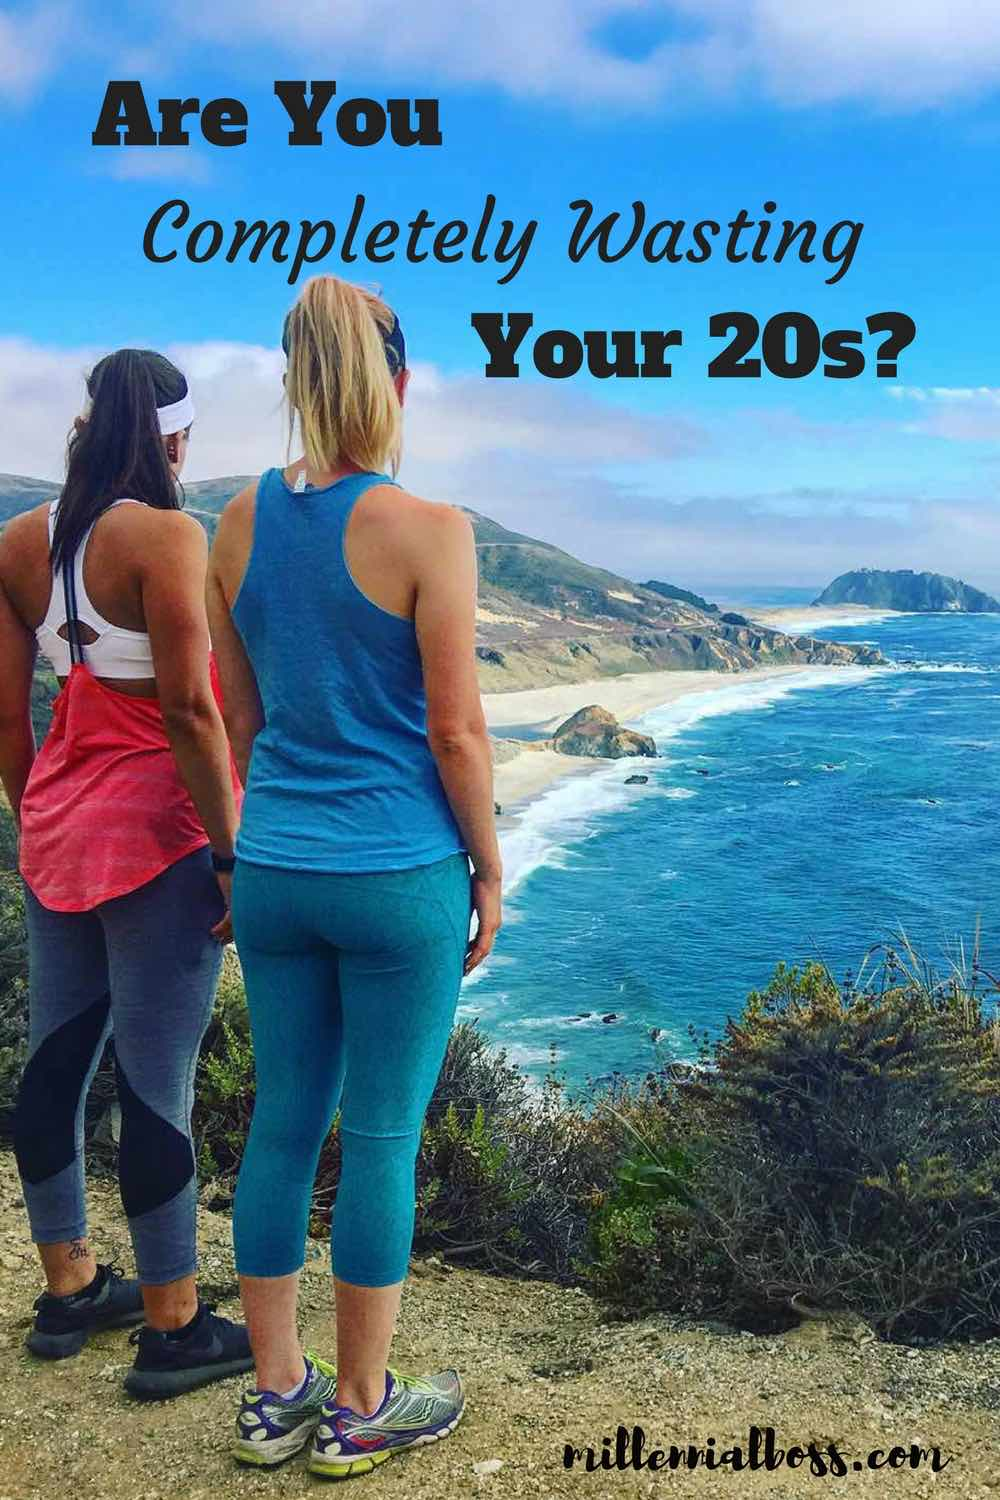 Did I waste my twenties or did I beast them? | Your twenties are not a time to screw around. They are a time to lay the foundation forthe life you want in your thirties. Don't waste time in dead-end relationships or jobs that won't get you to the next step.